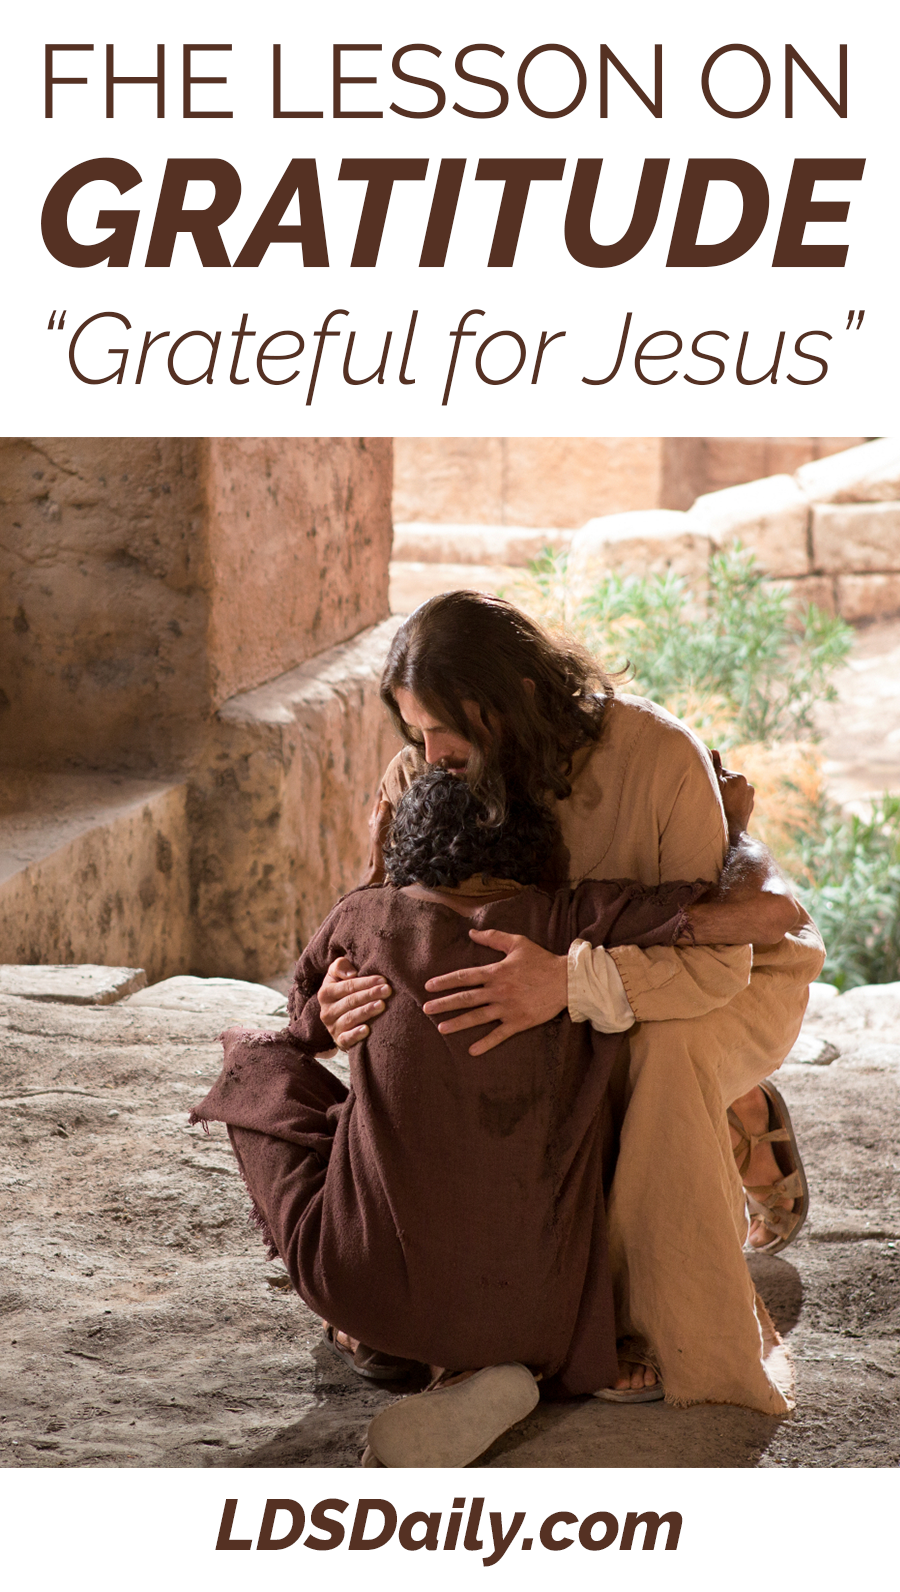 FHE Lesson on Gratitude - Grateful for Jesus